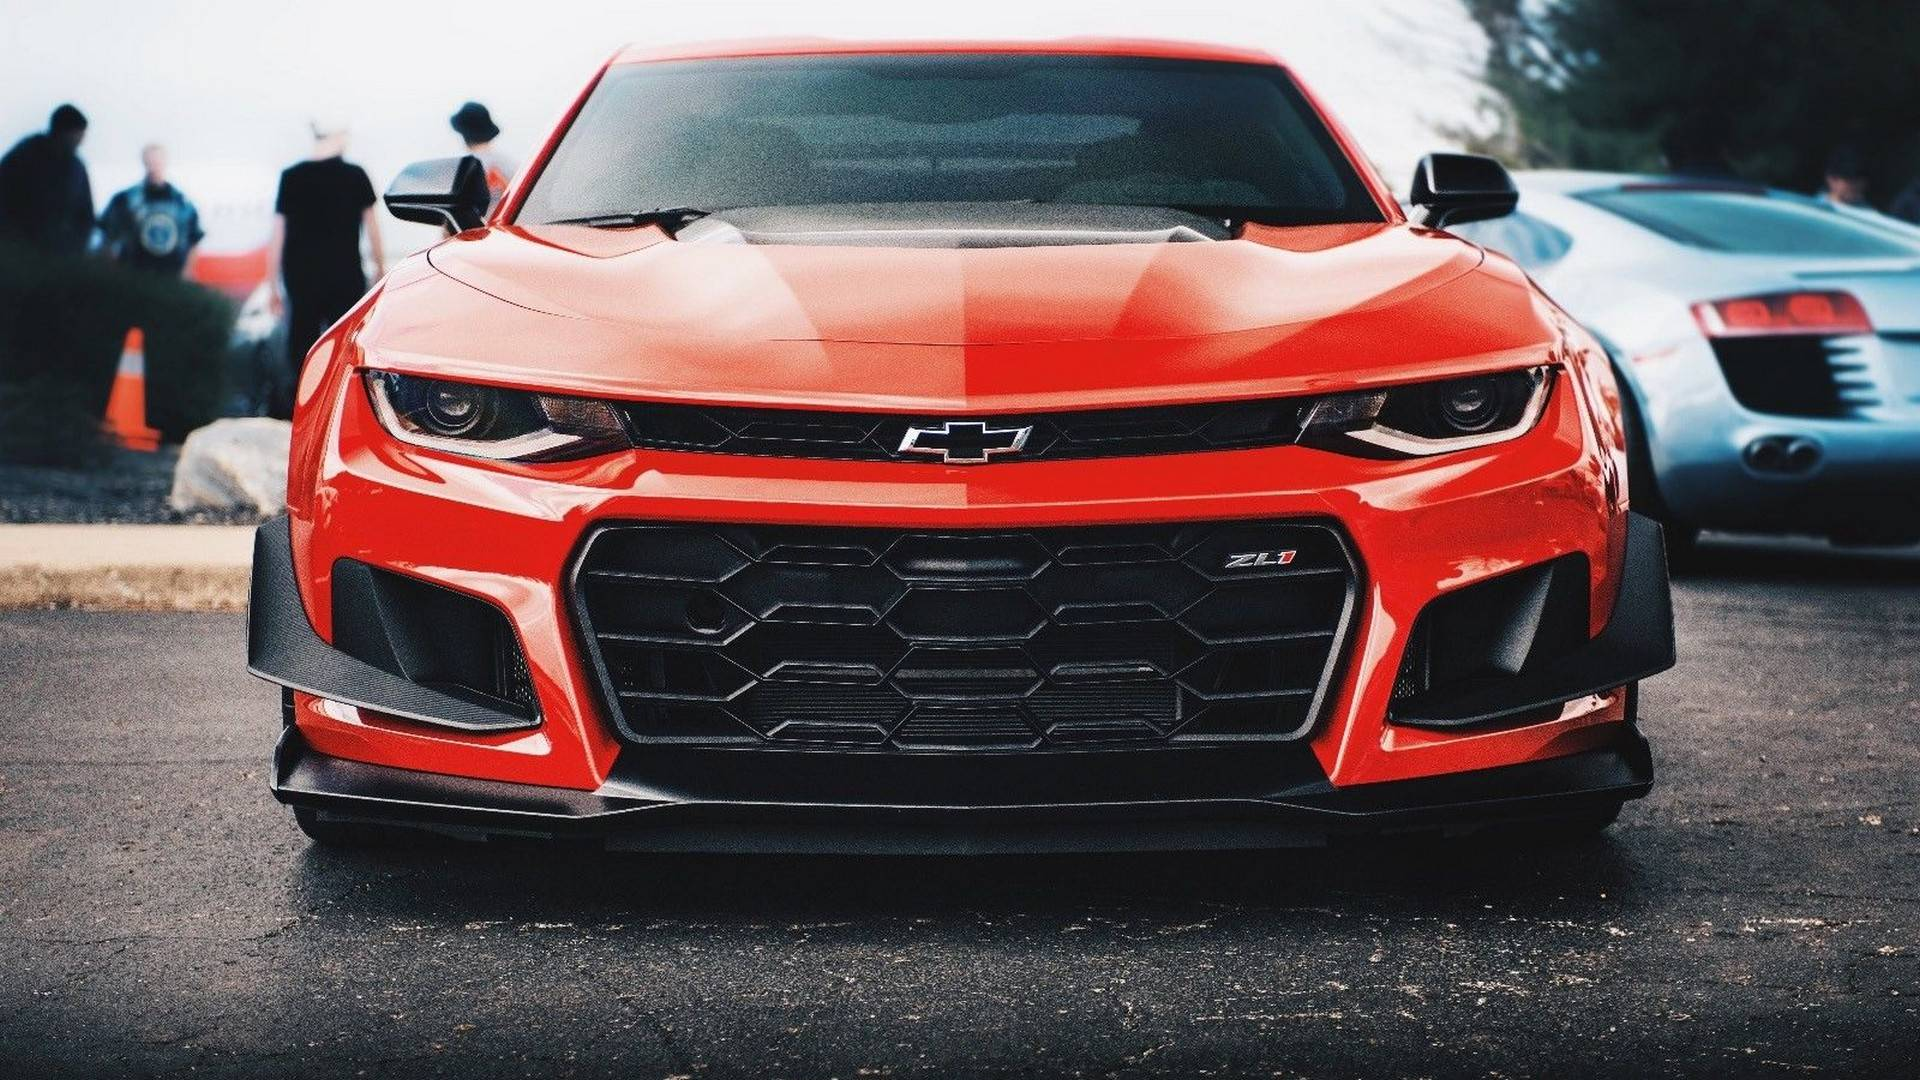 Professional Detailer Selling Highly Upgraded Chevy Camaro Zl1 Le